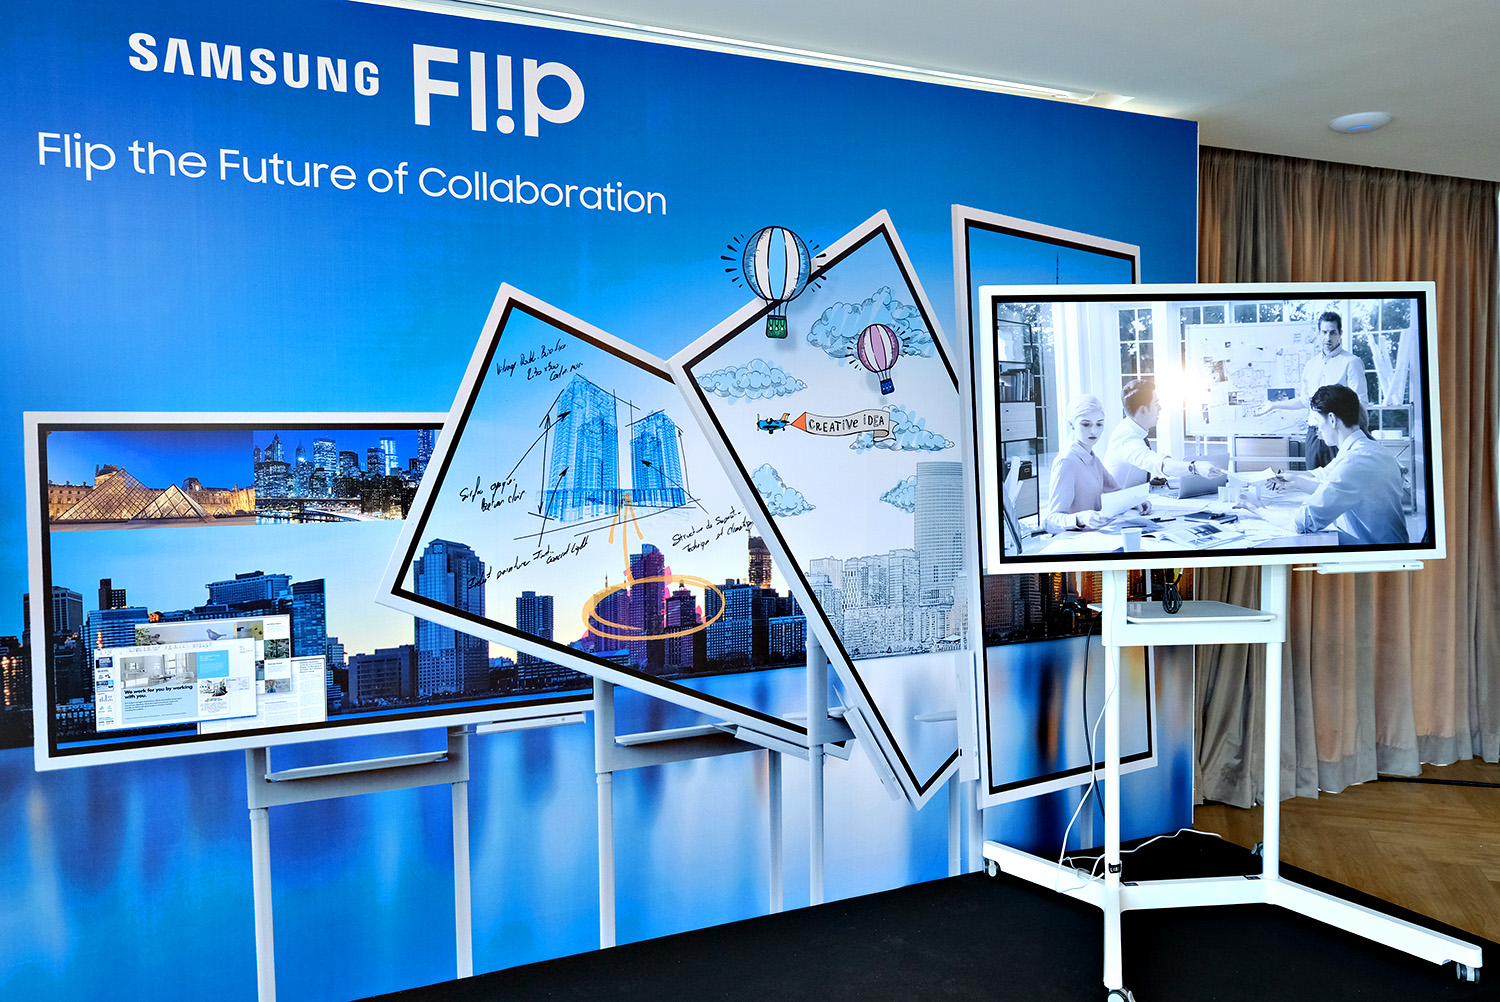 Samsung Flip: The Evolution of Workplace Collaboration